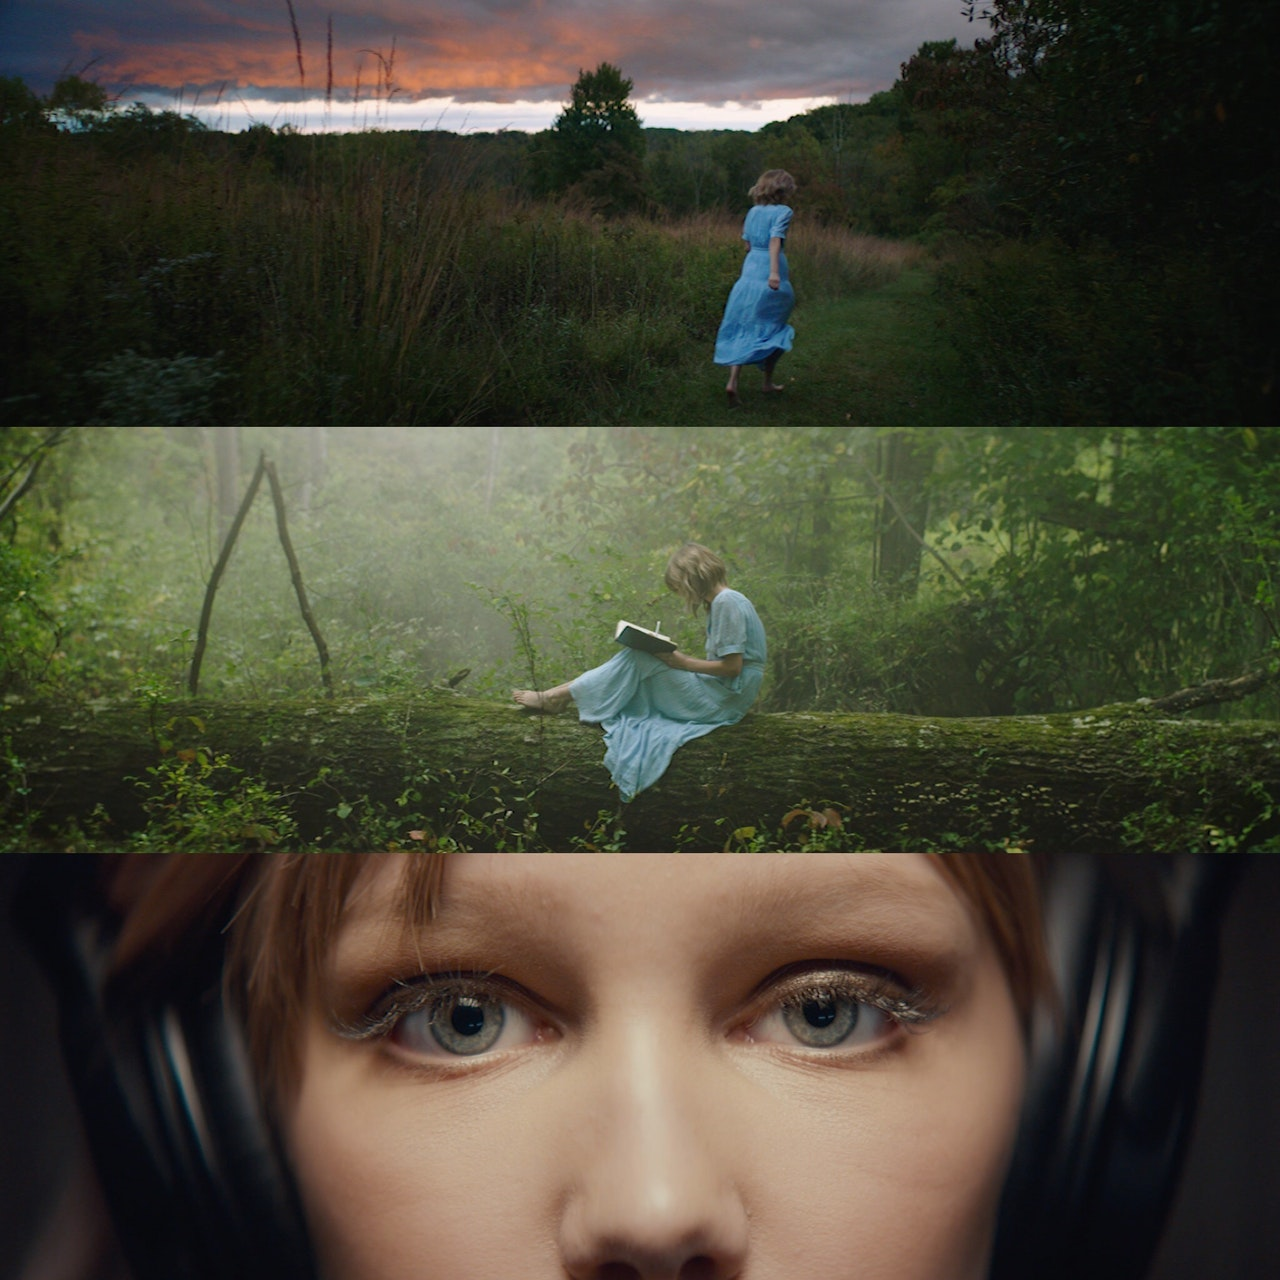 Grace Vanderwaal - So Much More